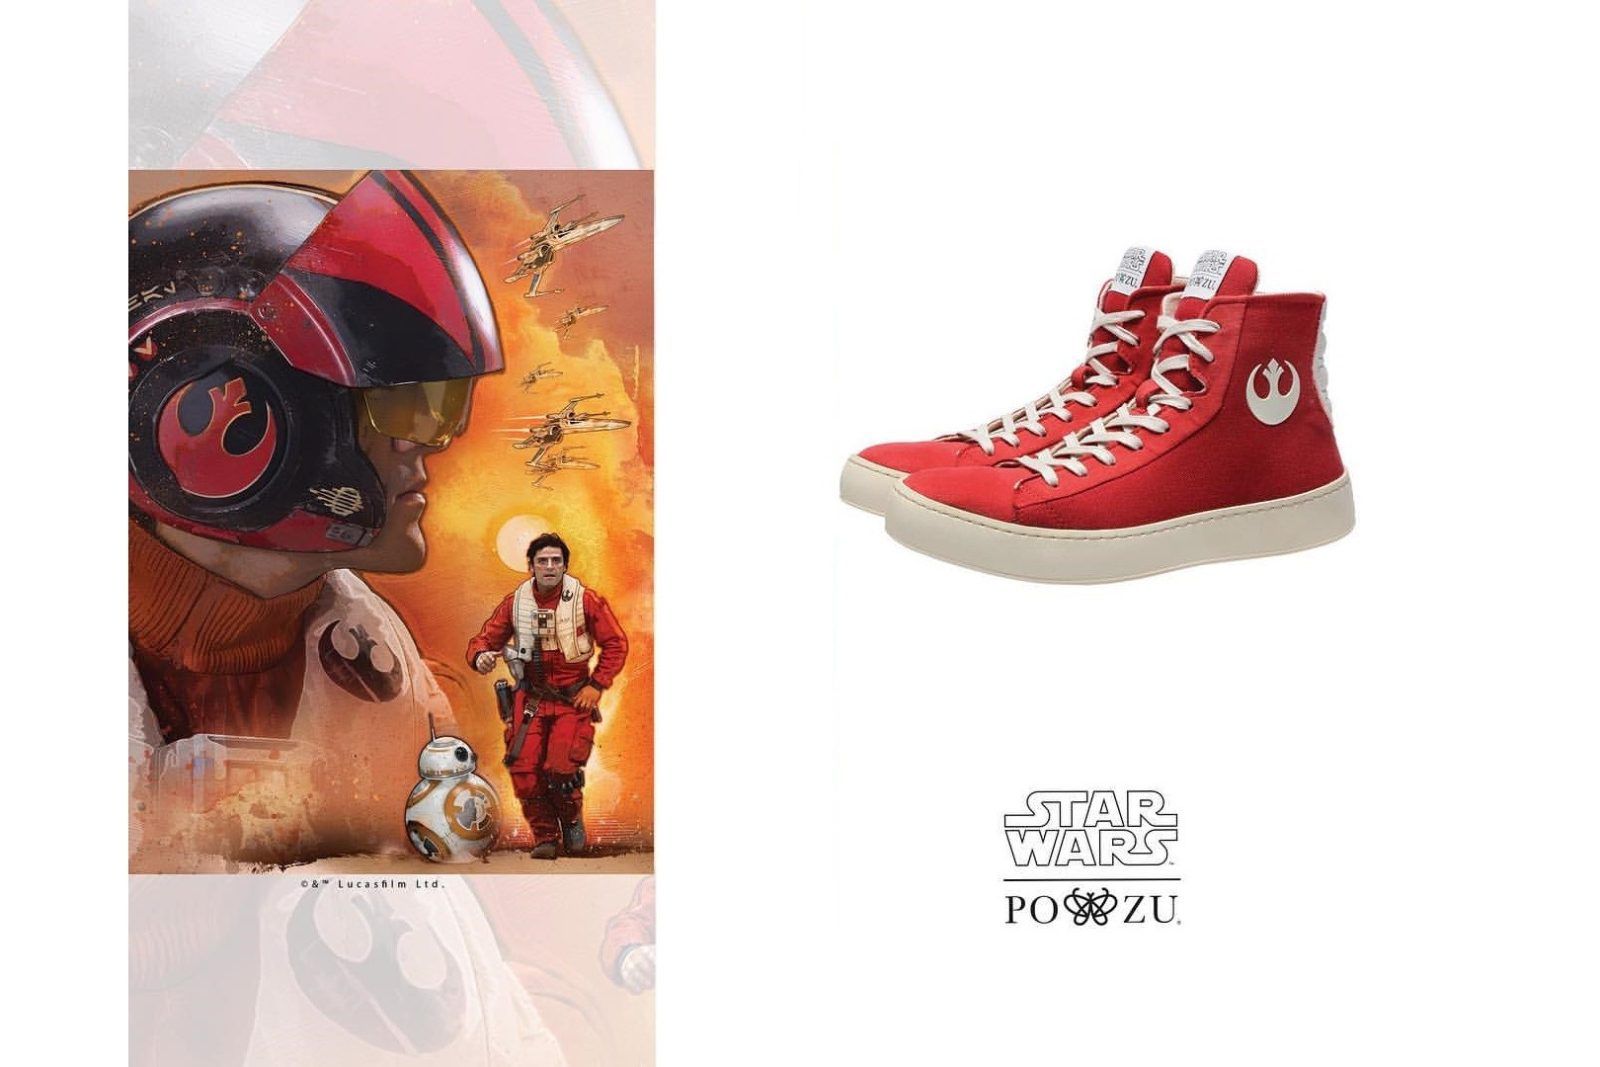 Po-Zu x Star Wars Resistance shoe preview!